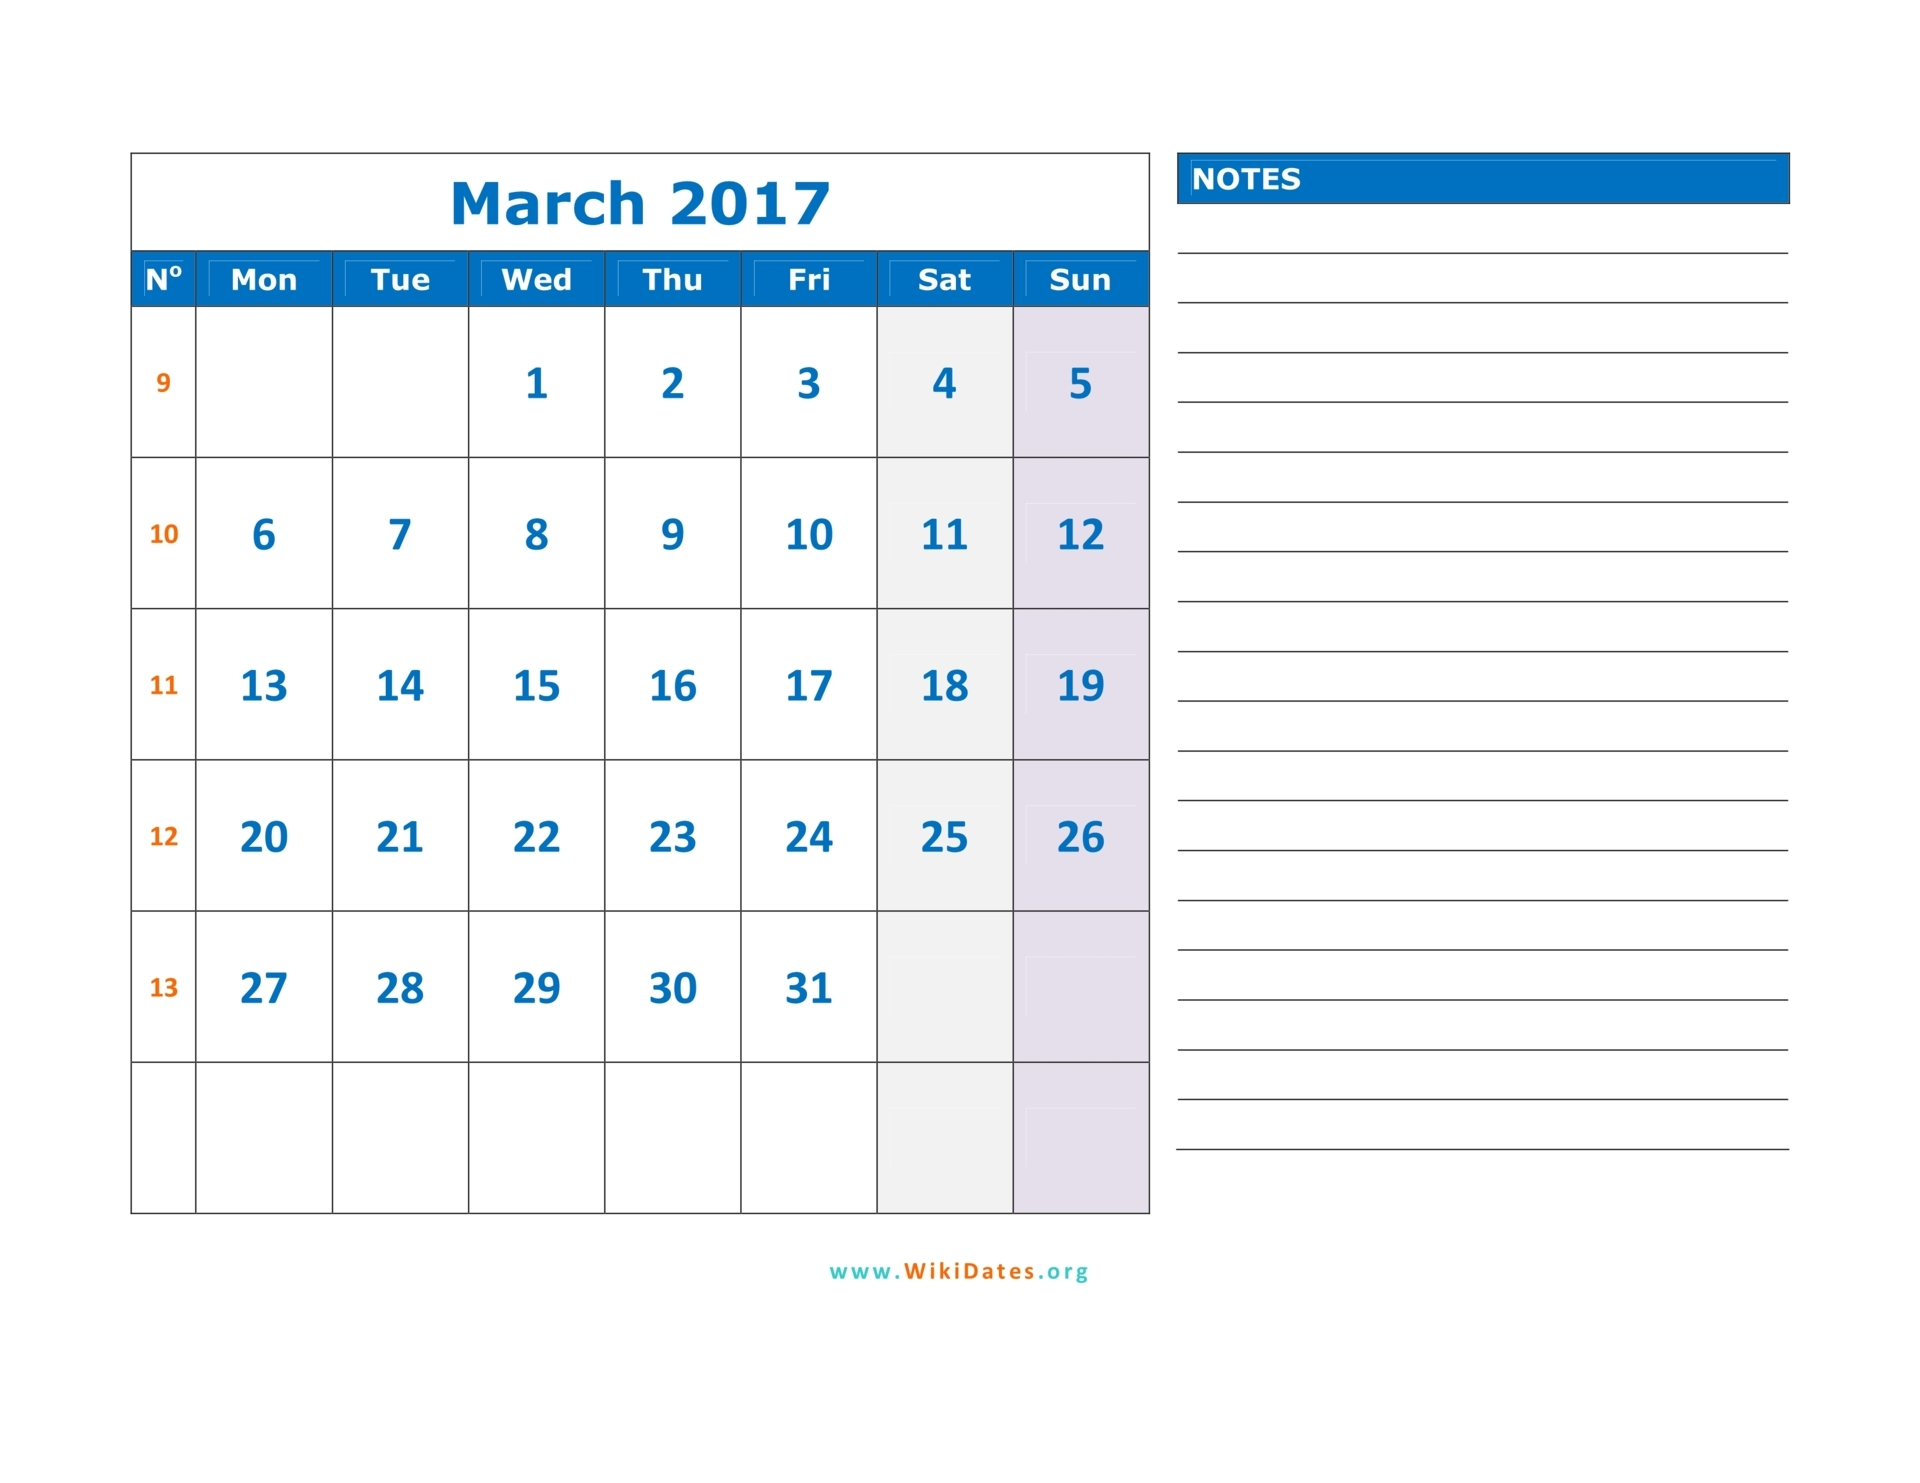 March 2017 Calendar | WikiDates.org